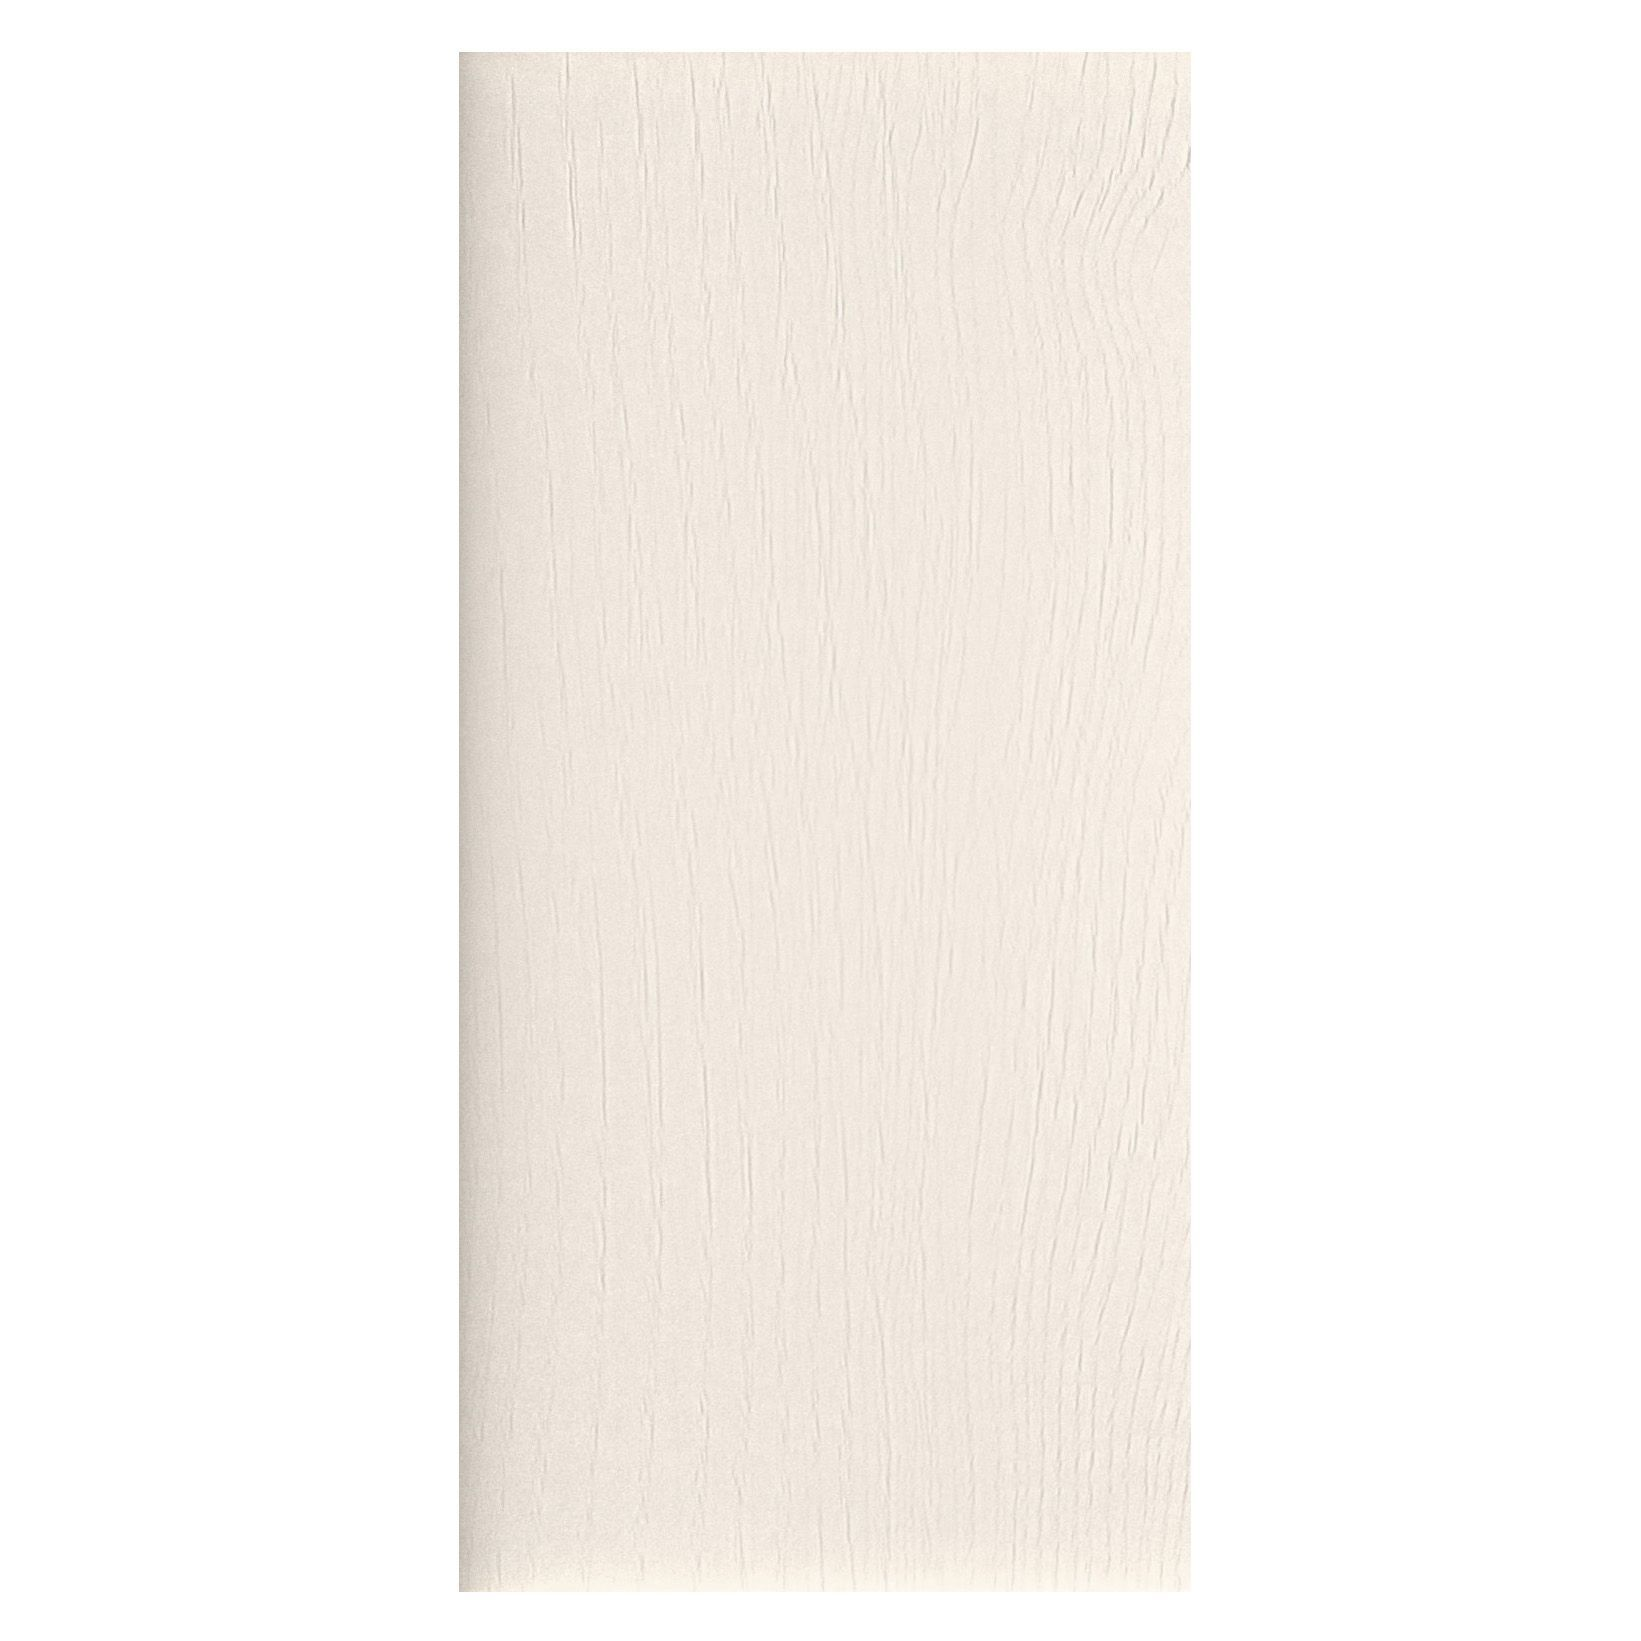 It Kitchens Ivory Style Wall End Replacement Panel 290 Mm